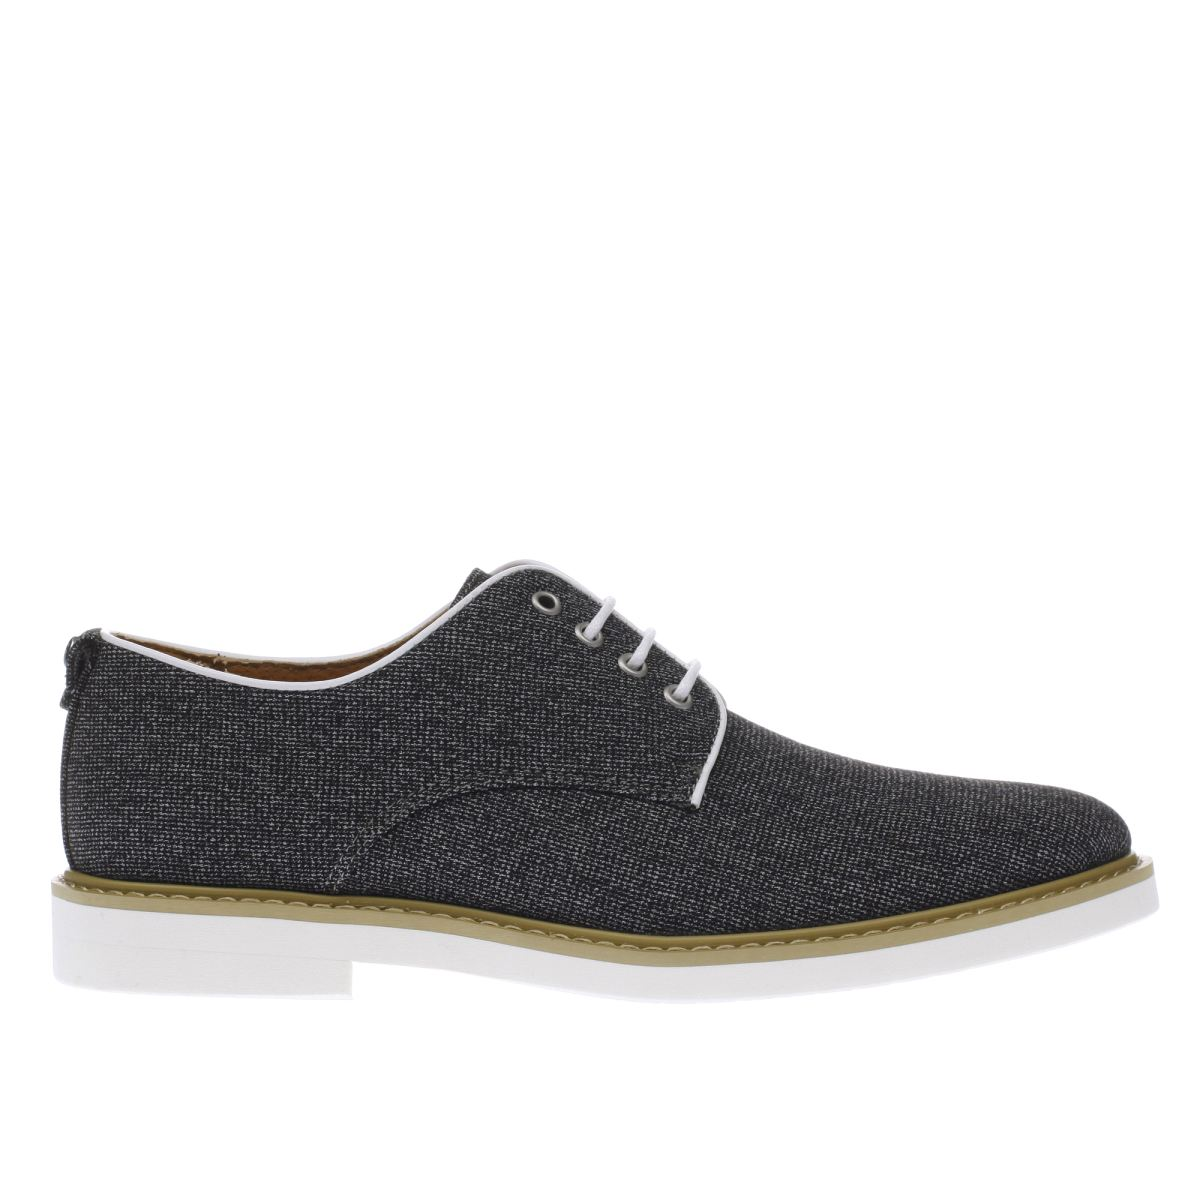 Peter Werth Peter Werth Grey Pegg Noise Shoes